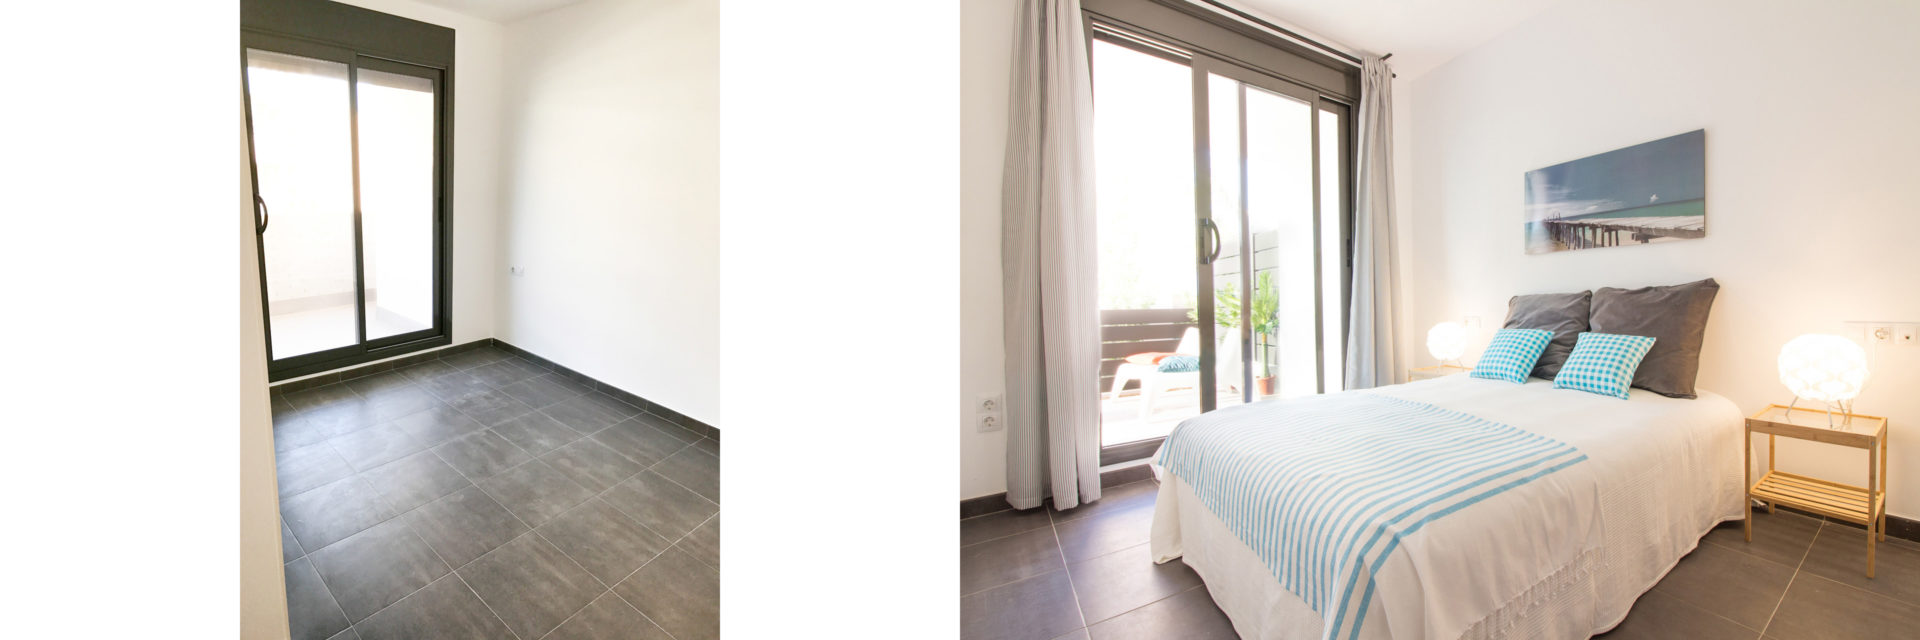 piso piloto low cost tarragona carton home staging